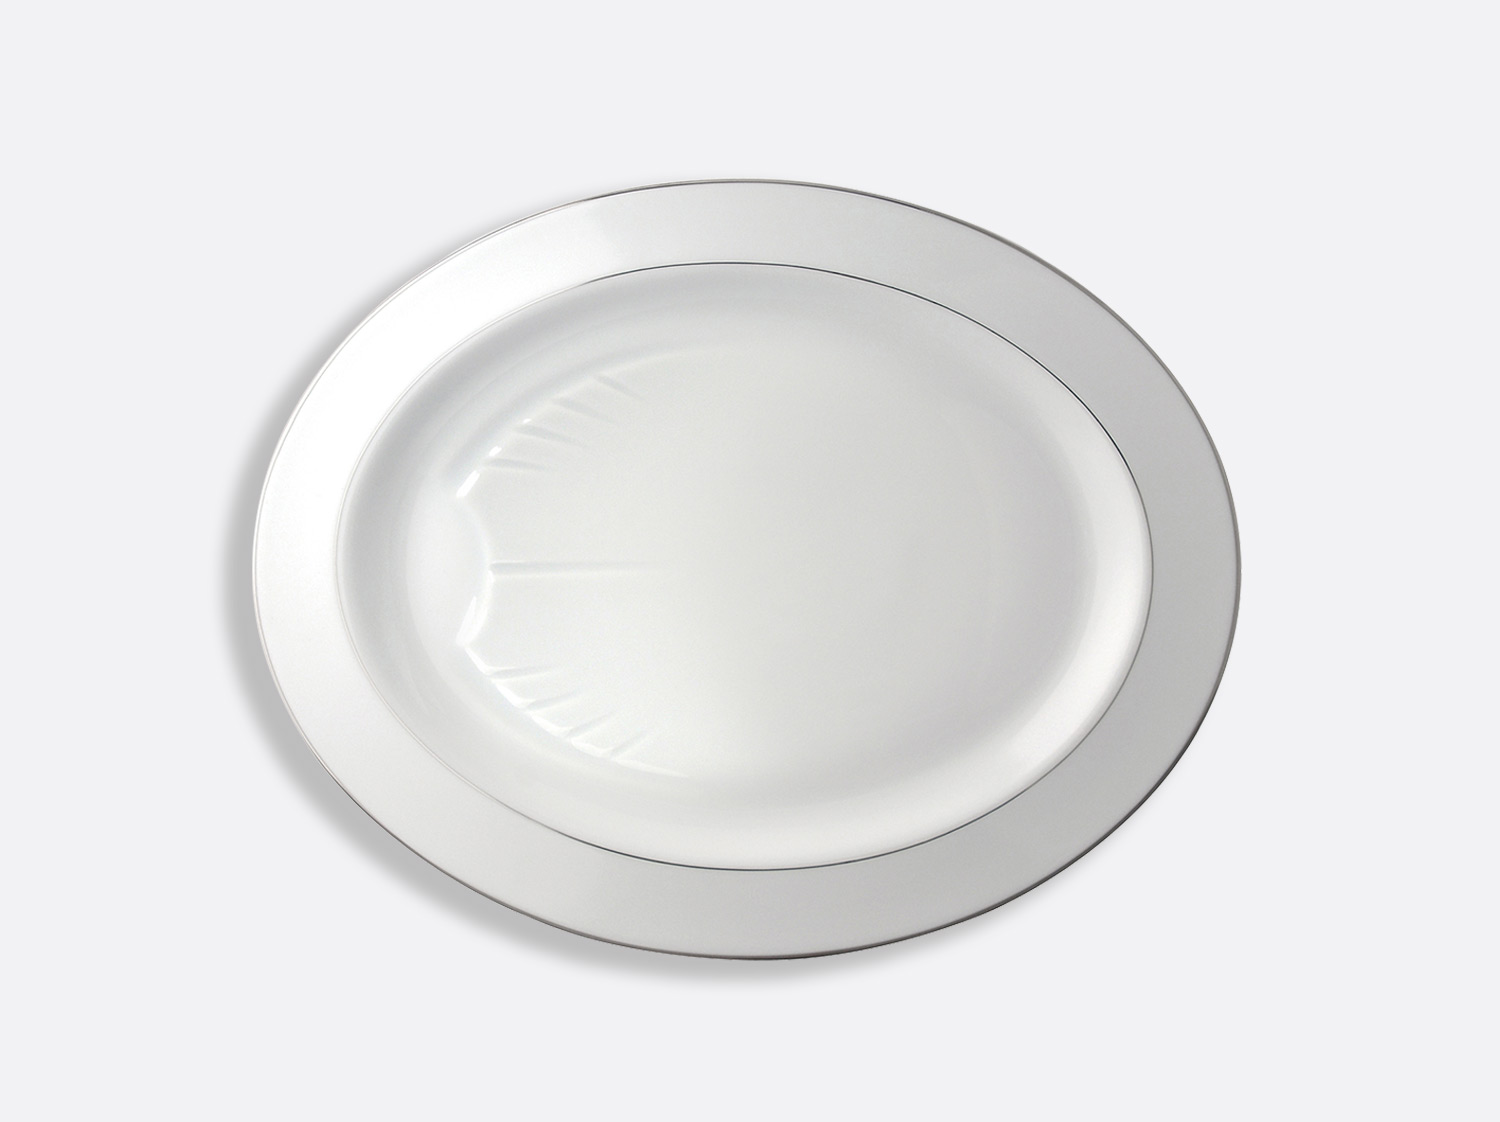 China Oval platter  43 cm of the collection Cristal | Bernardaud